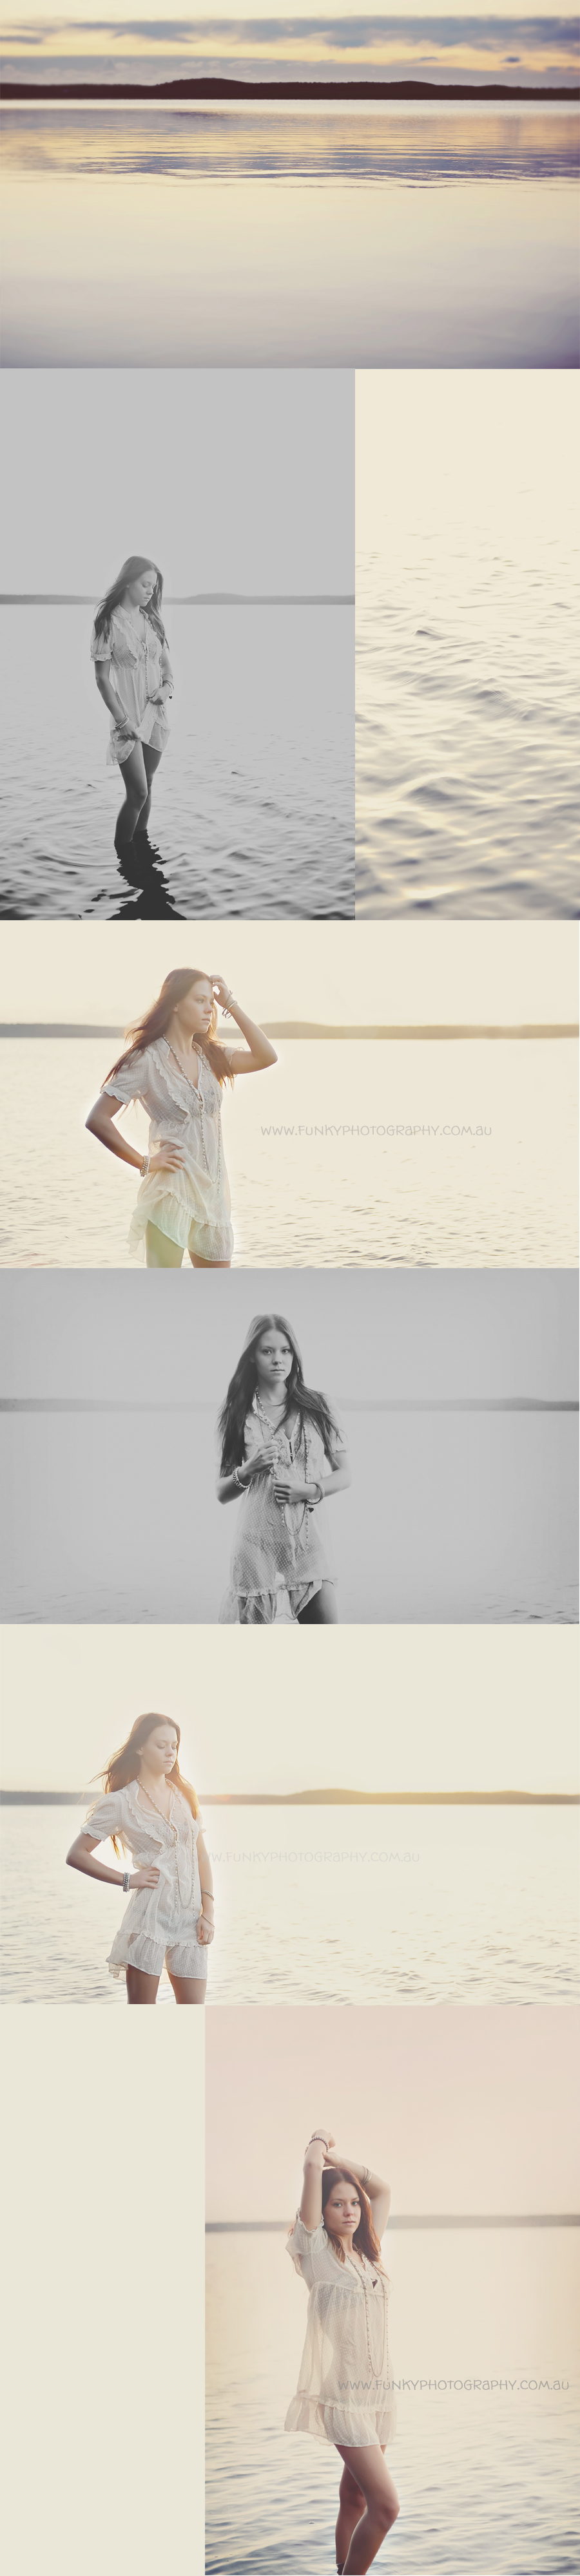 seniors photography shoot in a lake vintage styled